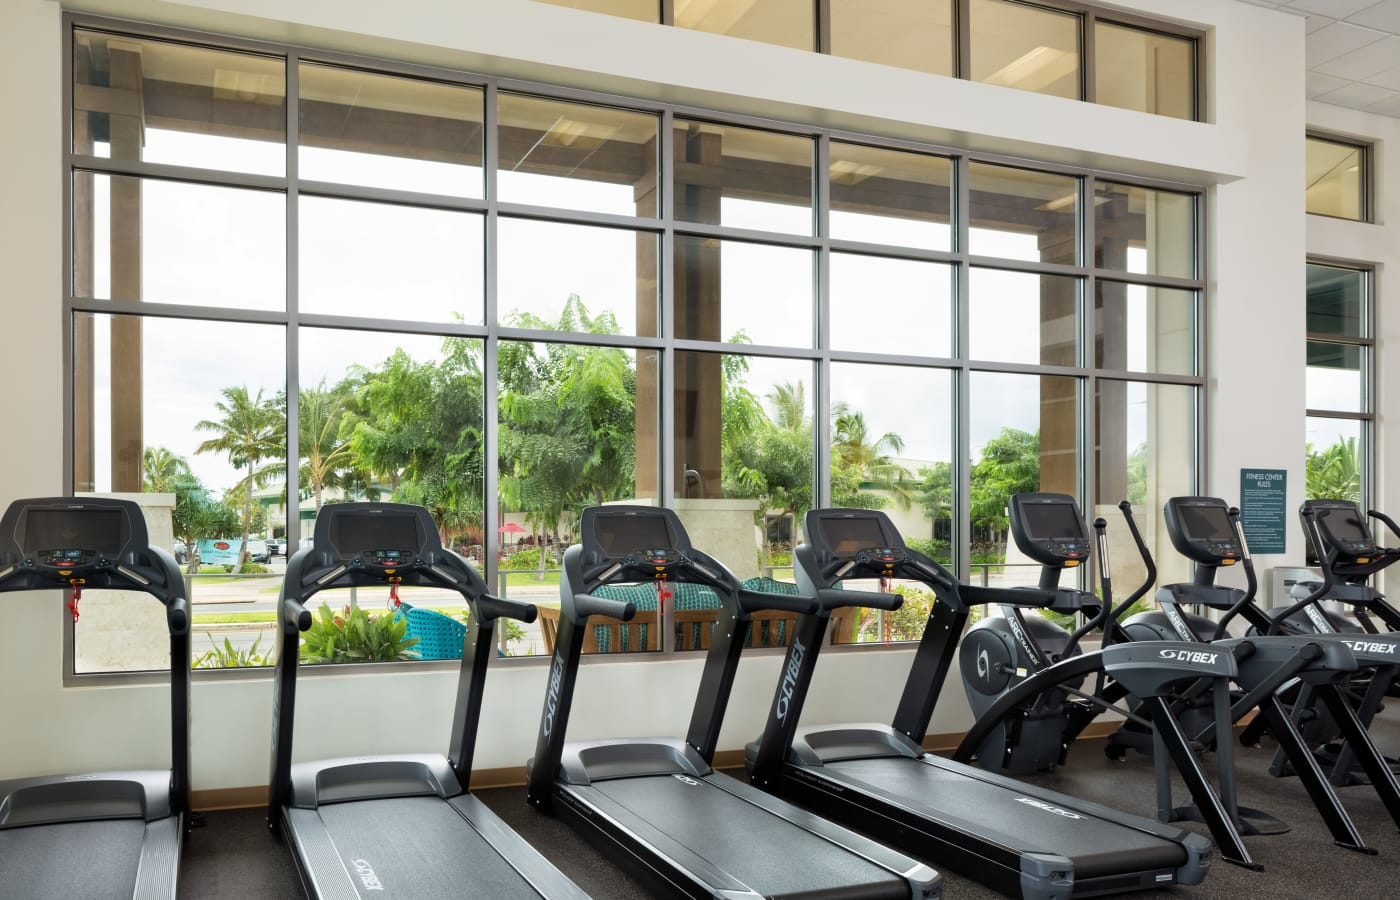 Well-equipped fitness center at Kapolei Lofts in Kapolei, HI